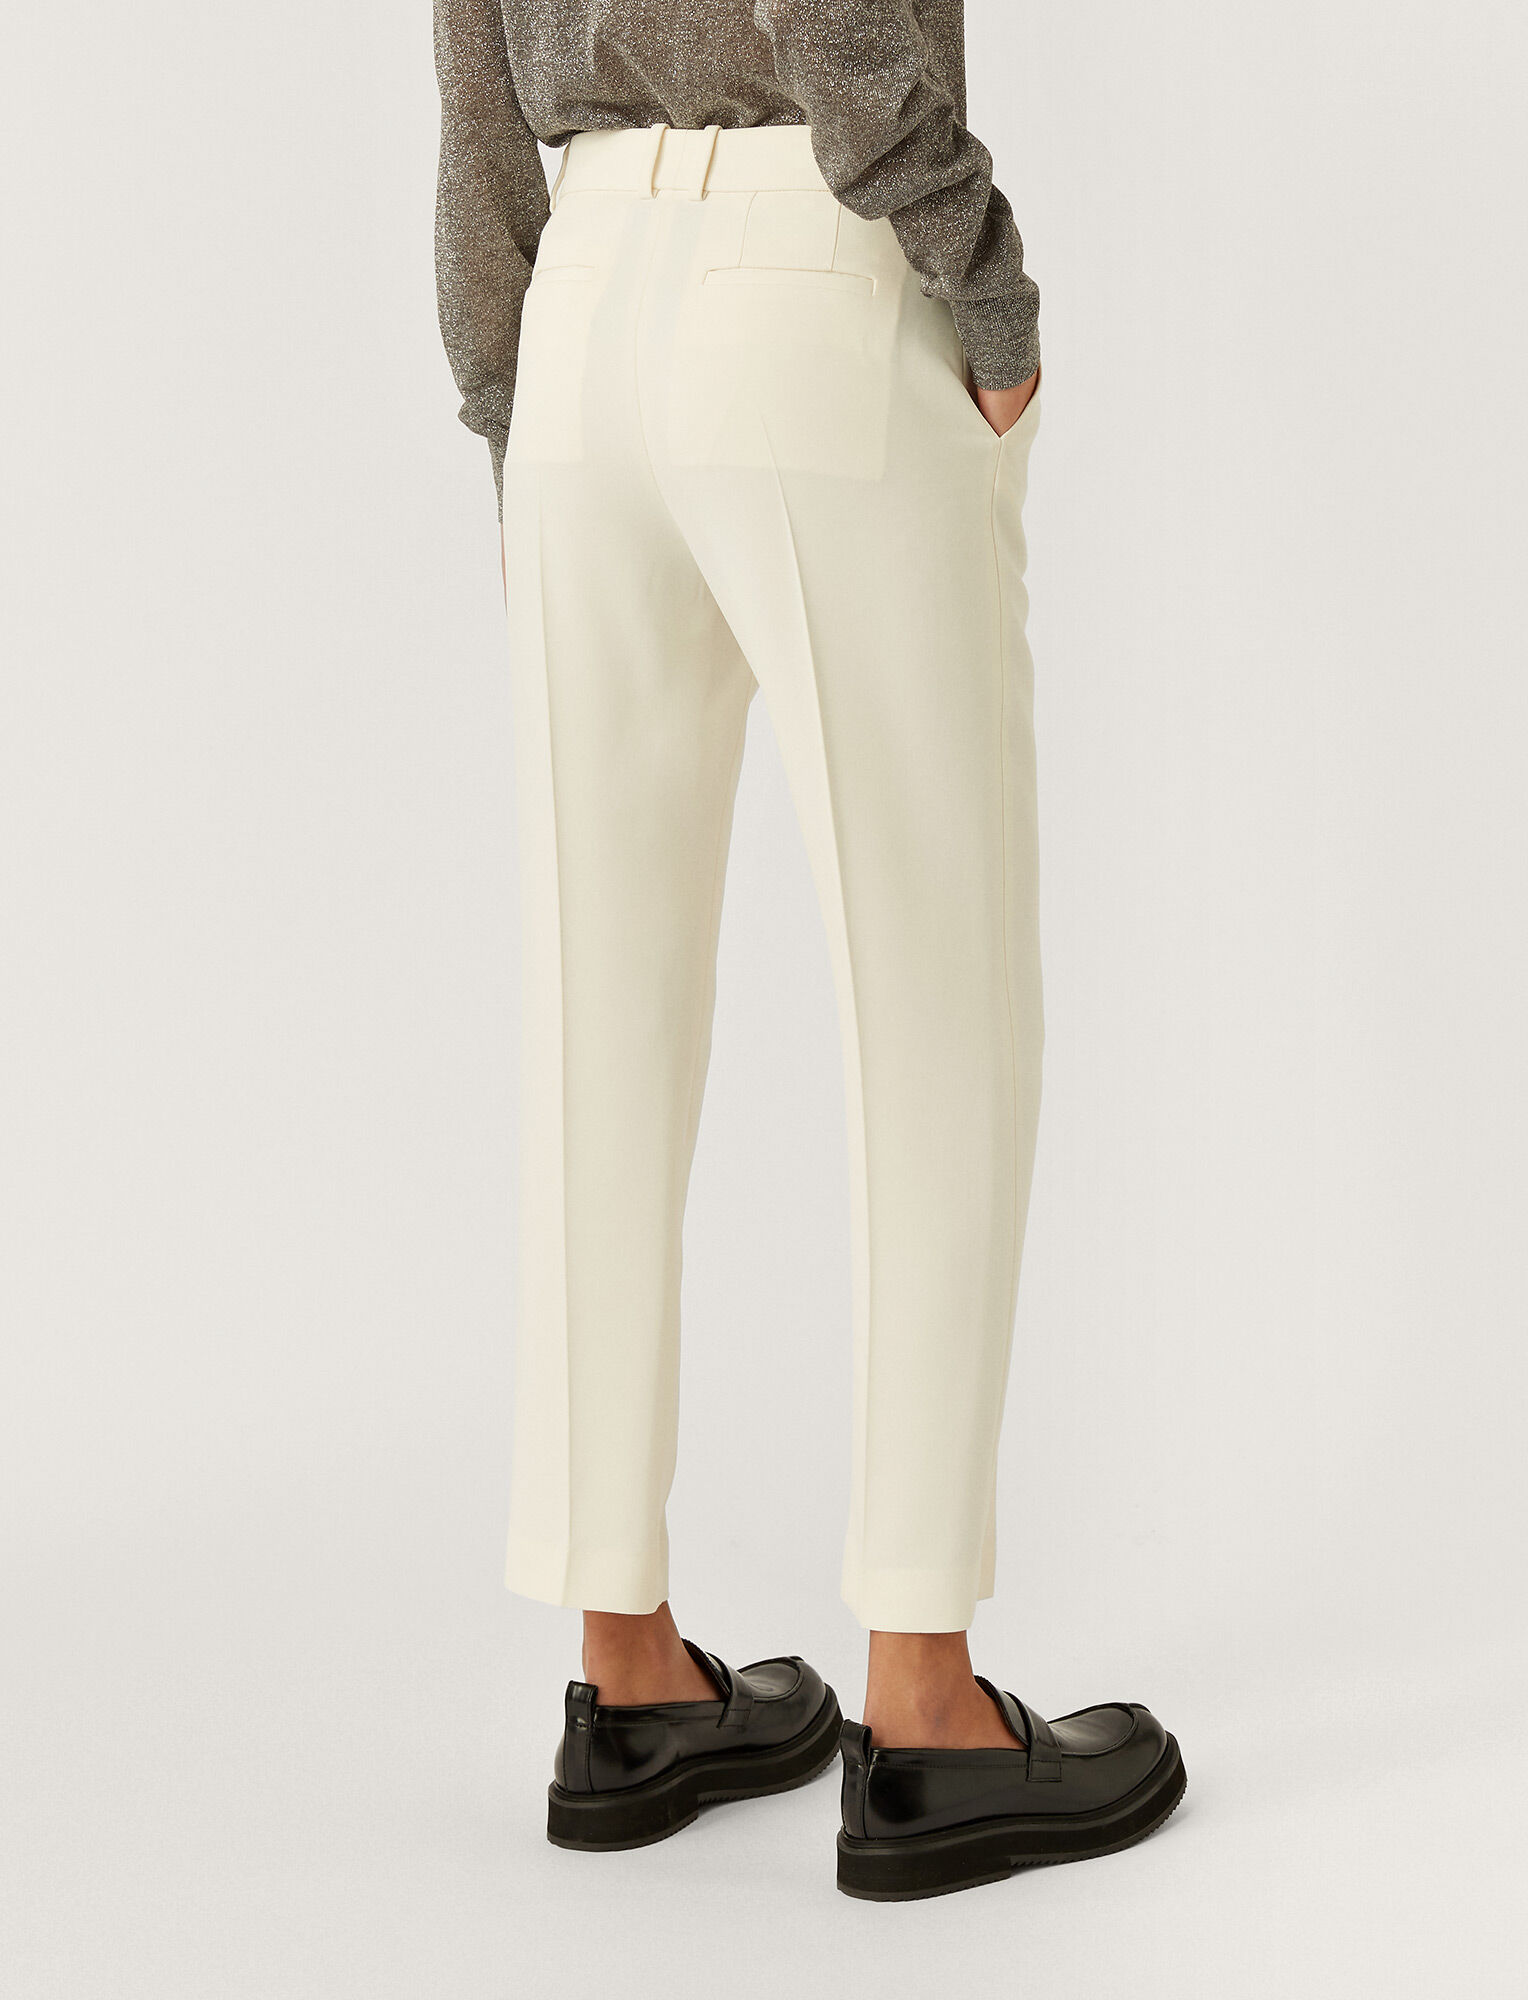 Joseph, New Cady Tape Trousers, in OFF WHITE